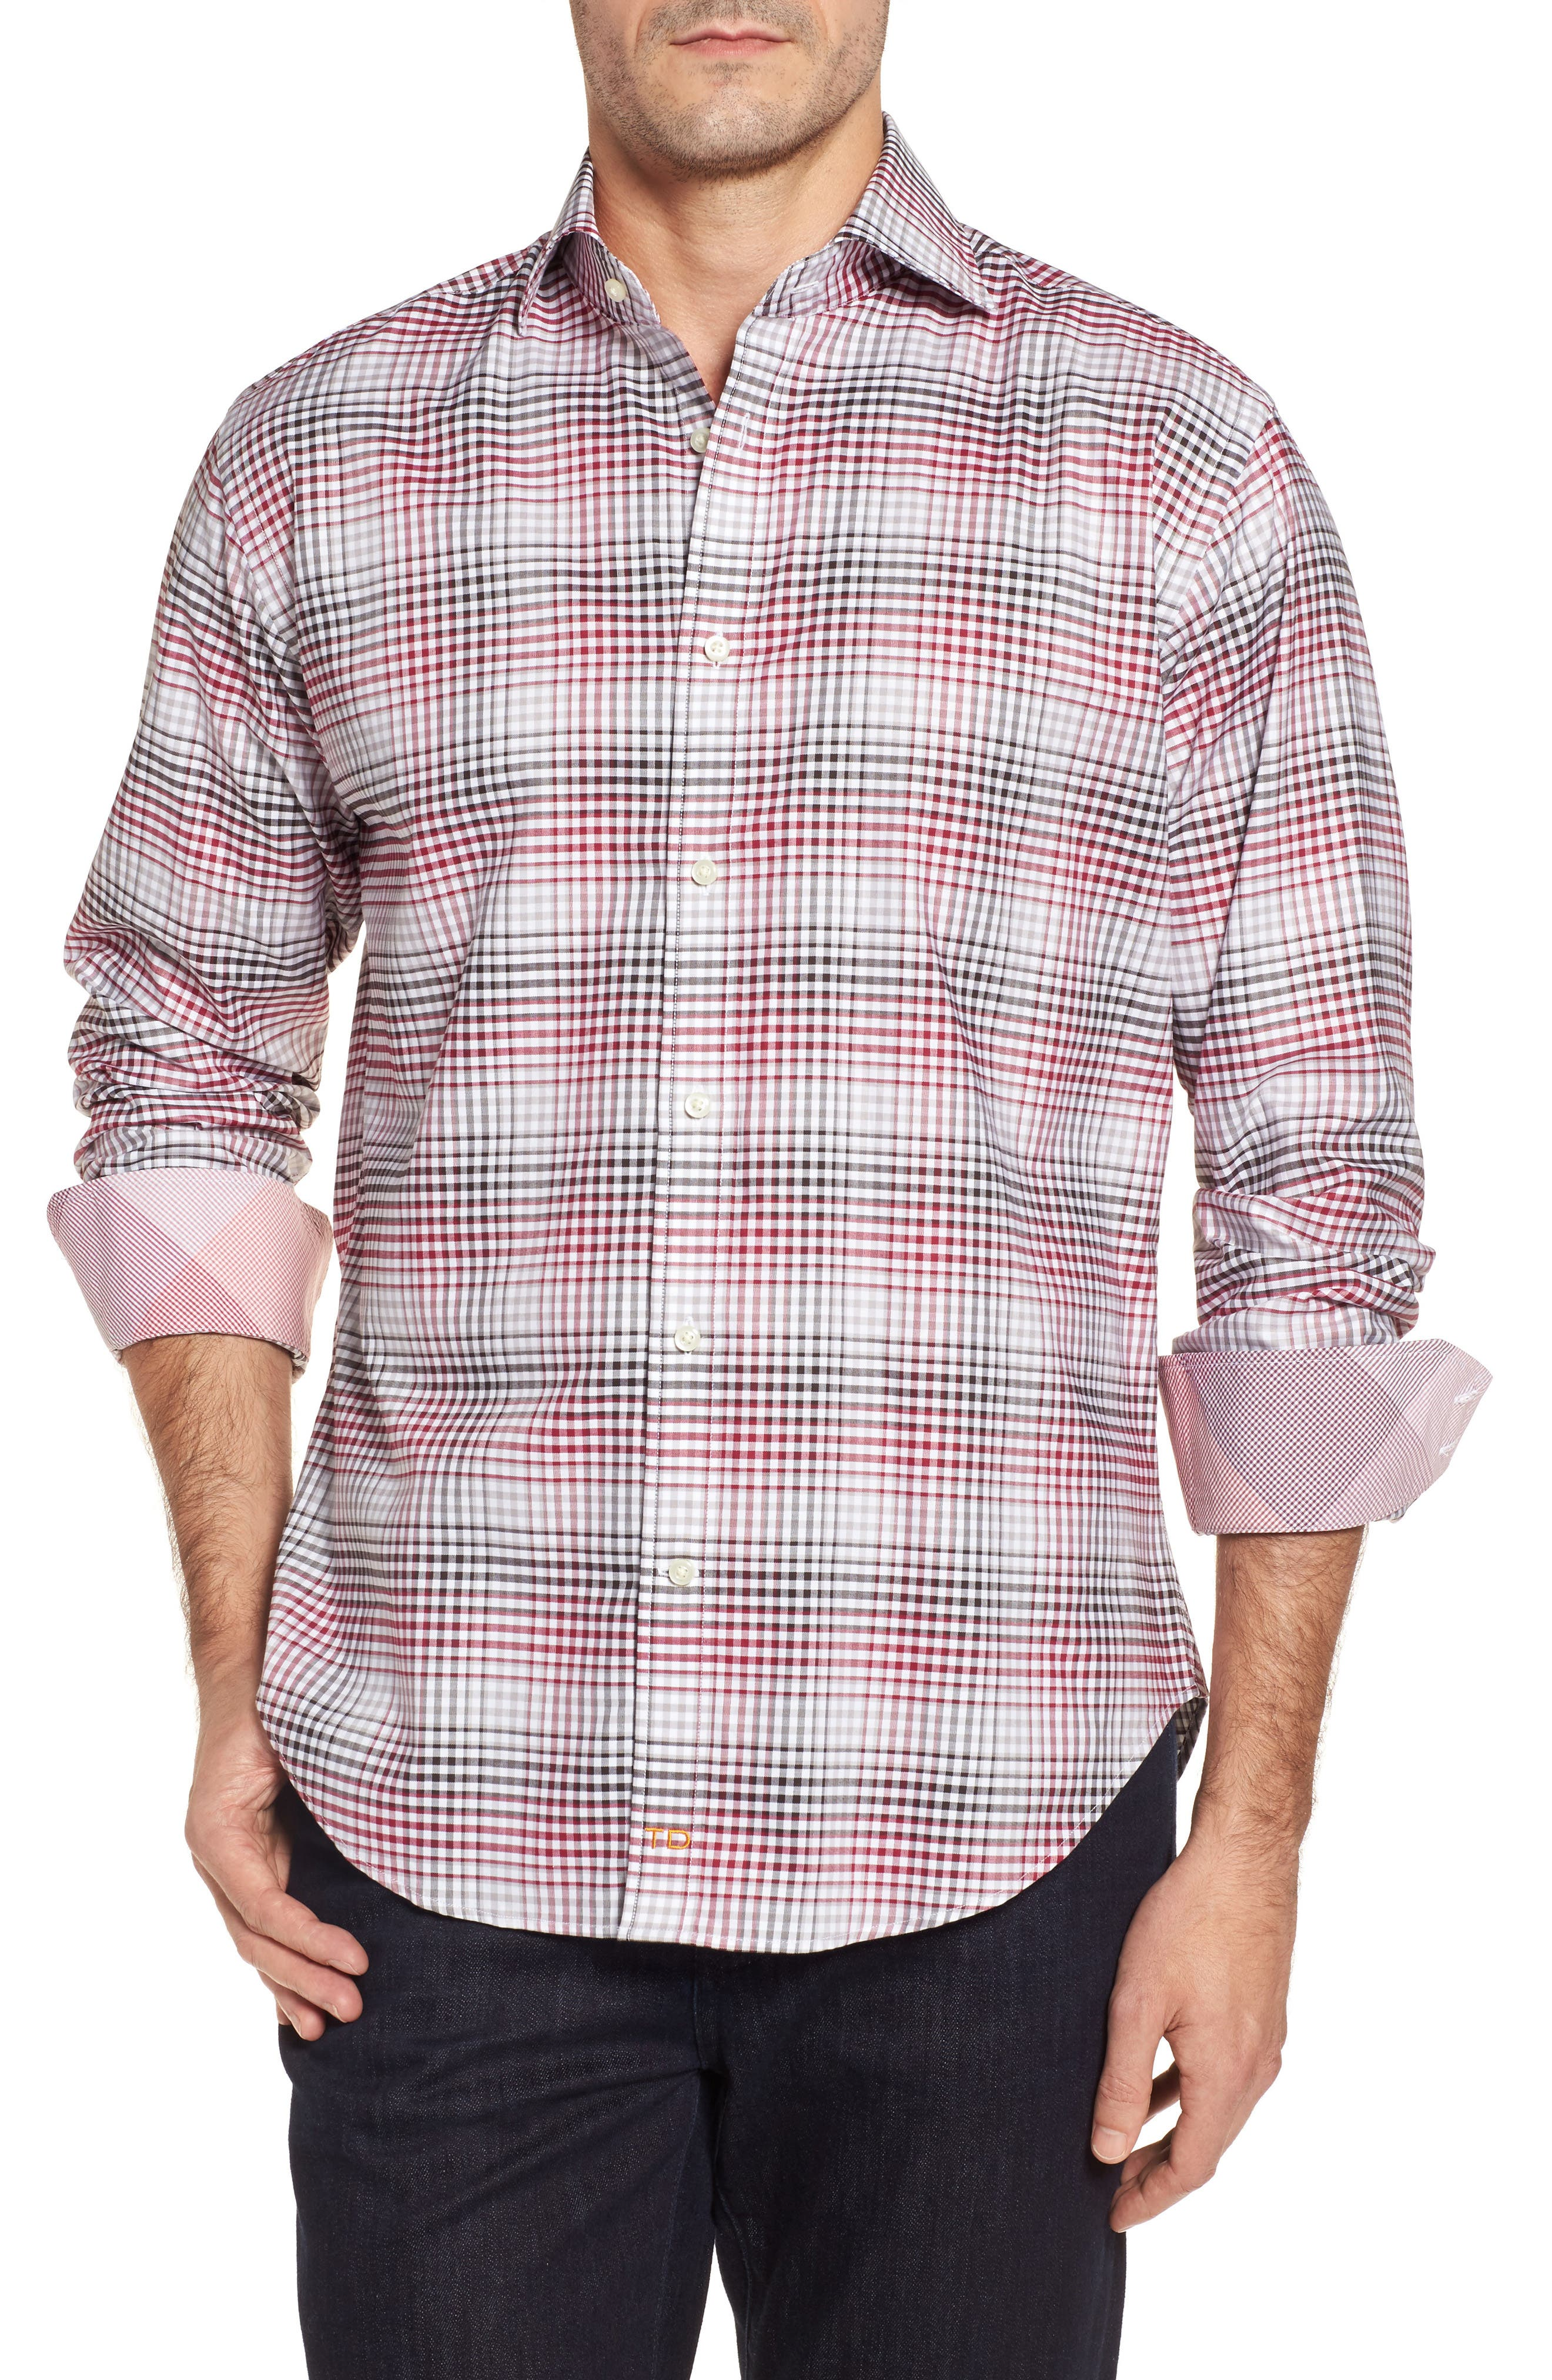 Regular Fit Check Sport Shirt,                             Main thumbnail 1, color,